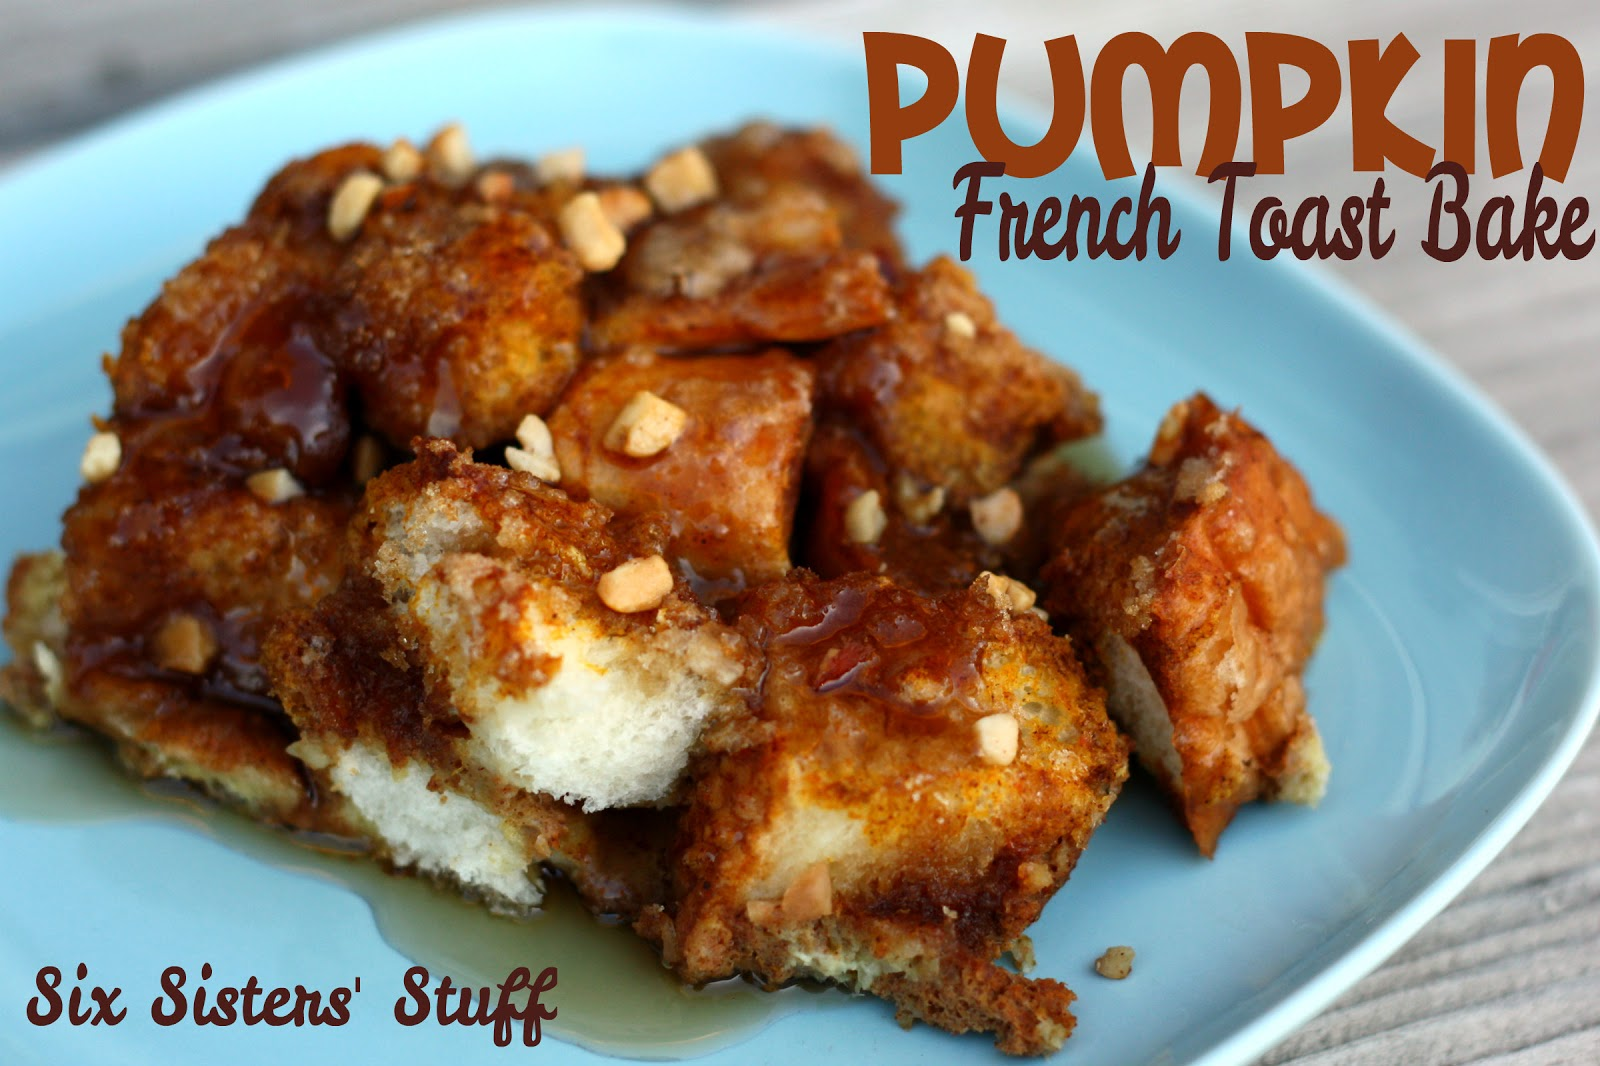 Pumpkin French Toast Bake | Six Sisters' Stuff